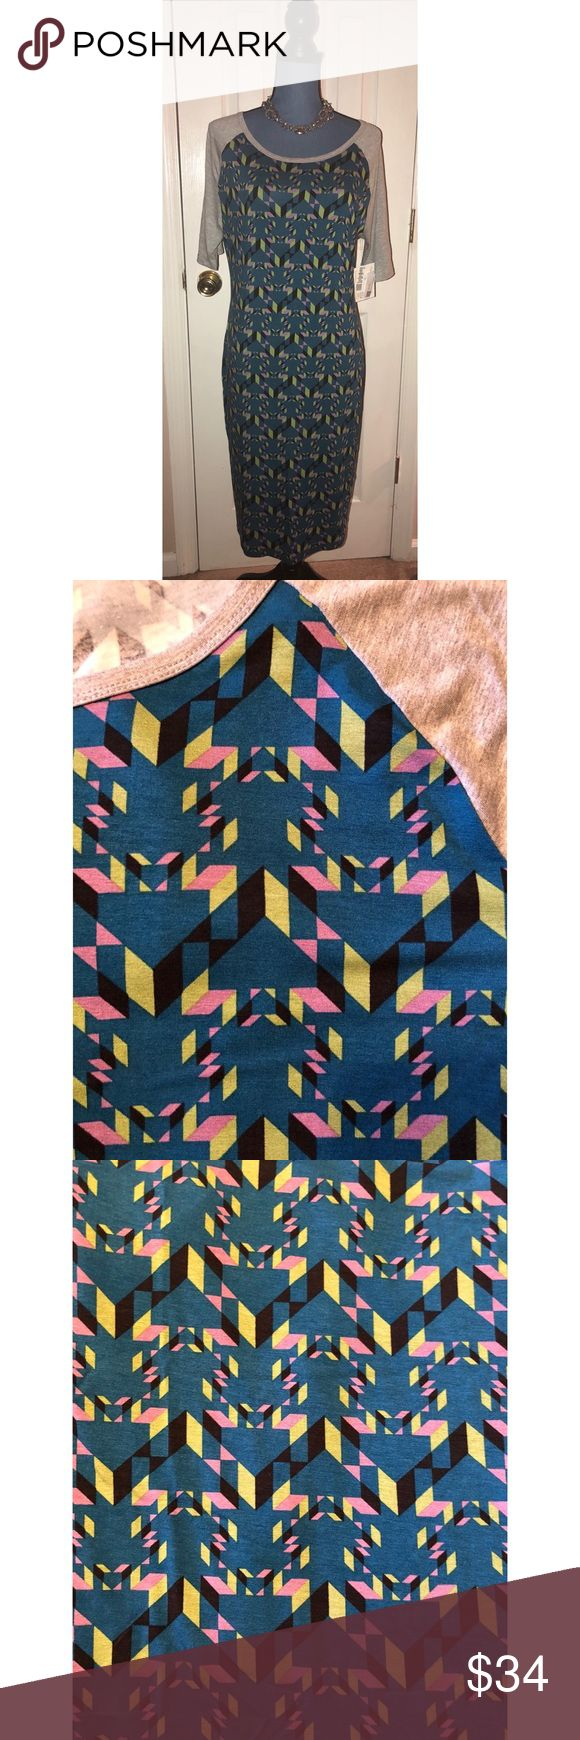 Julia dress Lularoe Size L Abstract print NWT The Julia dress from LulaRoe is a more form fitting style.  This is a size large.  Personally, I like a size up.  A sizing chart is available in pictures as well as fabric content.  Beautiful abstract print.  Necklace not included. NEW WITH TAGS. LuLaRoe Dresses Midi